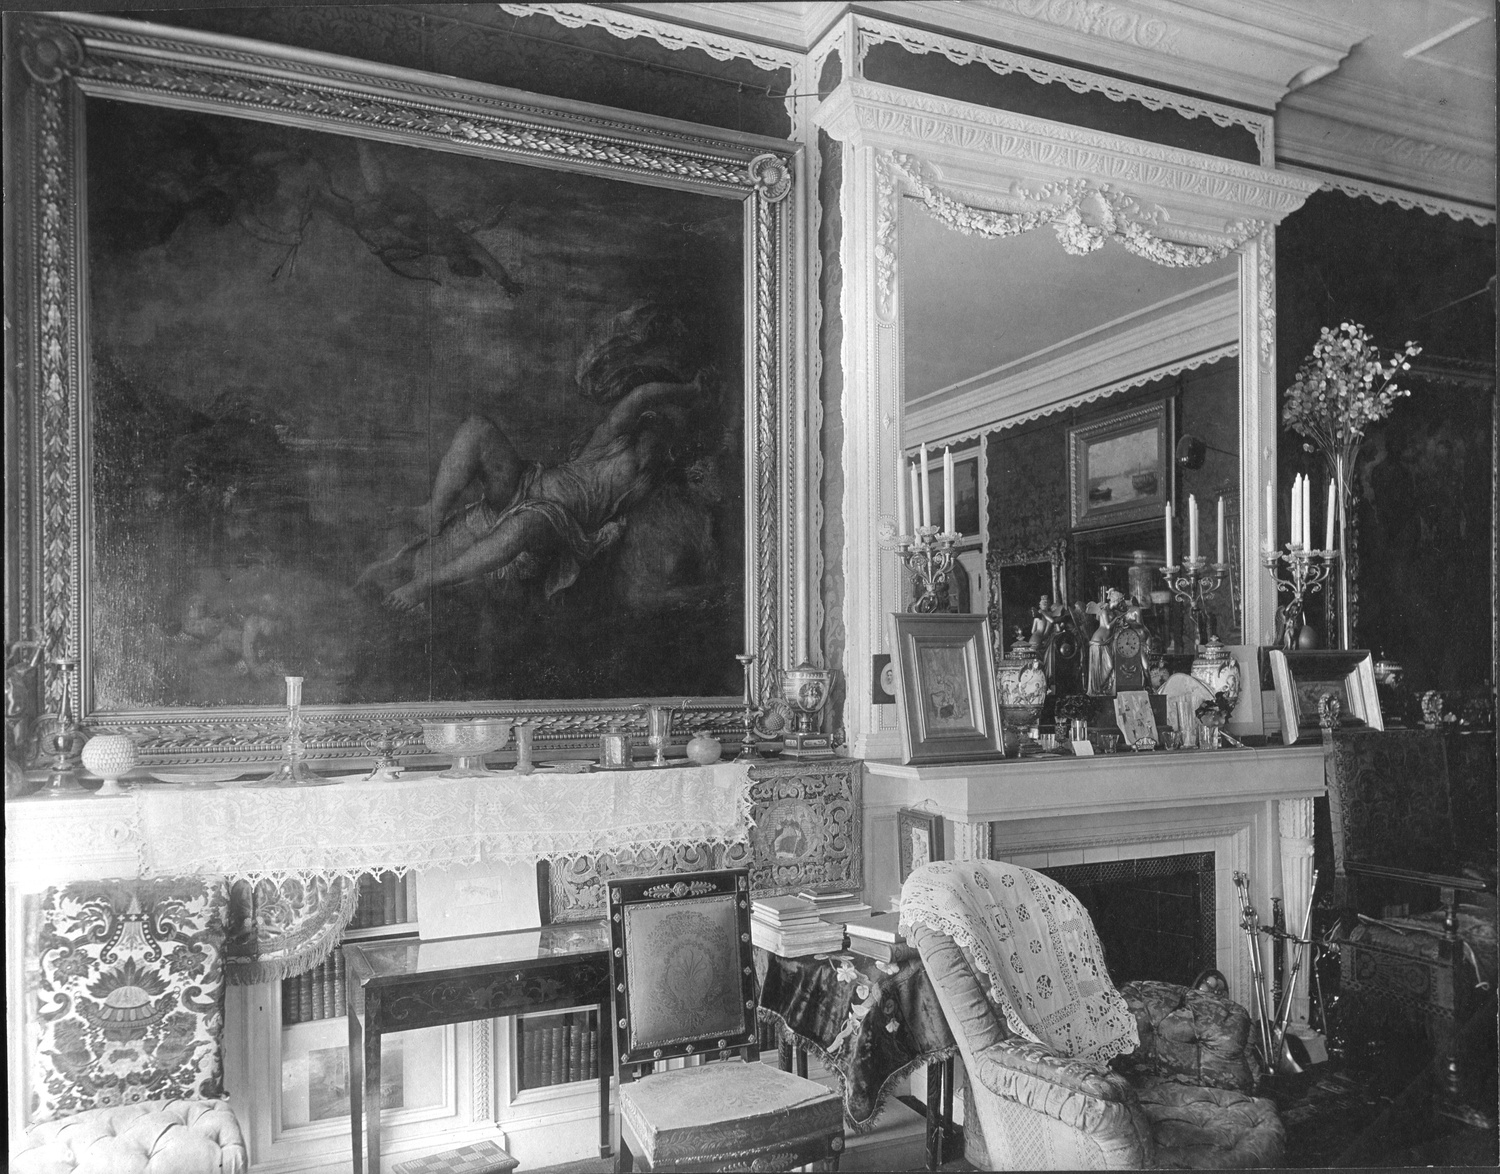 Thomas E. Marr, Titian's Rape of Europa installed in the Red Drawing Room at Isabella Stewart Gardner's residence at 152 Beacon Street, Boston, 1900.